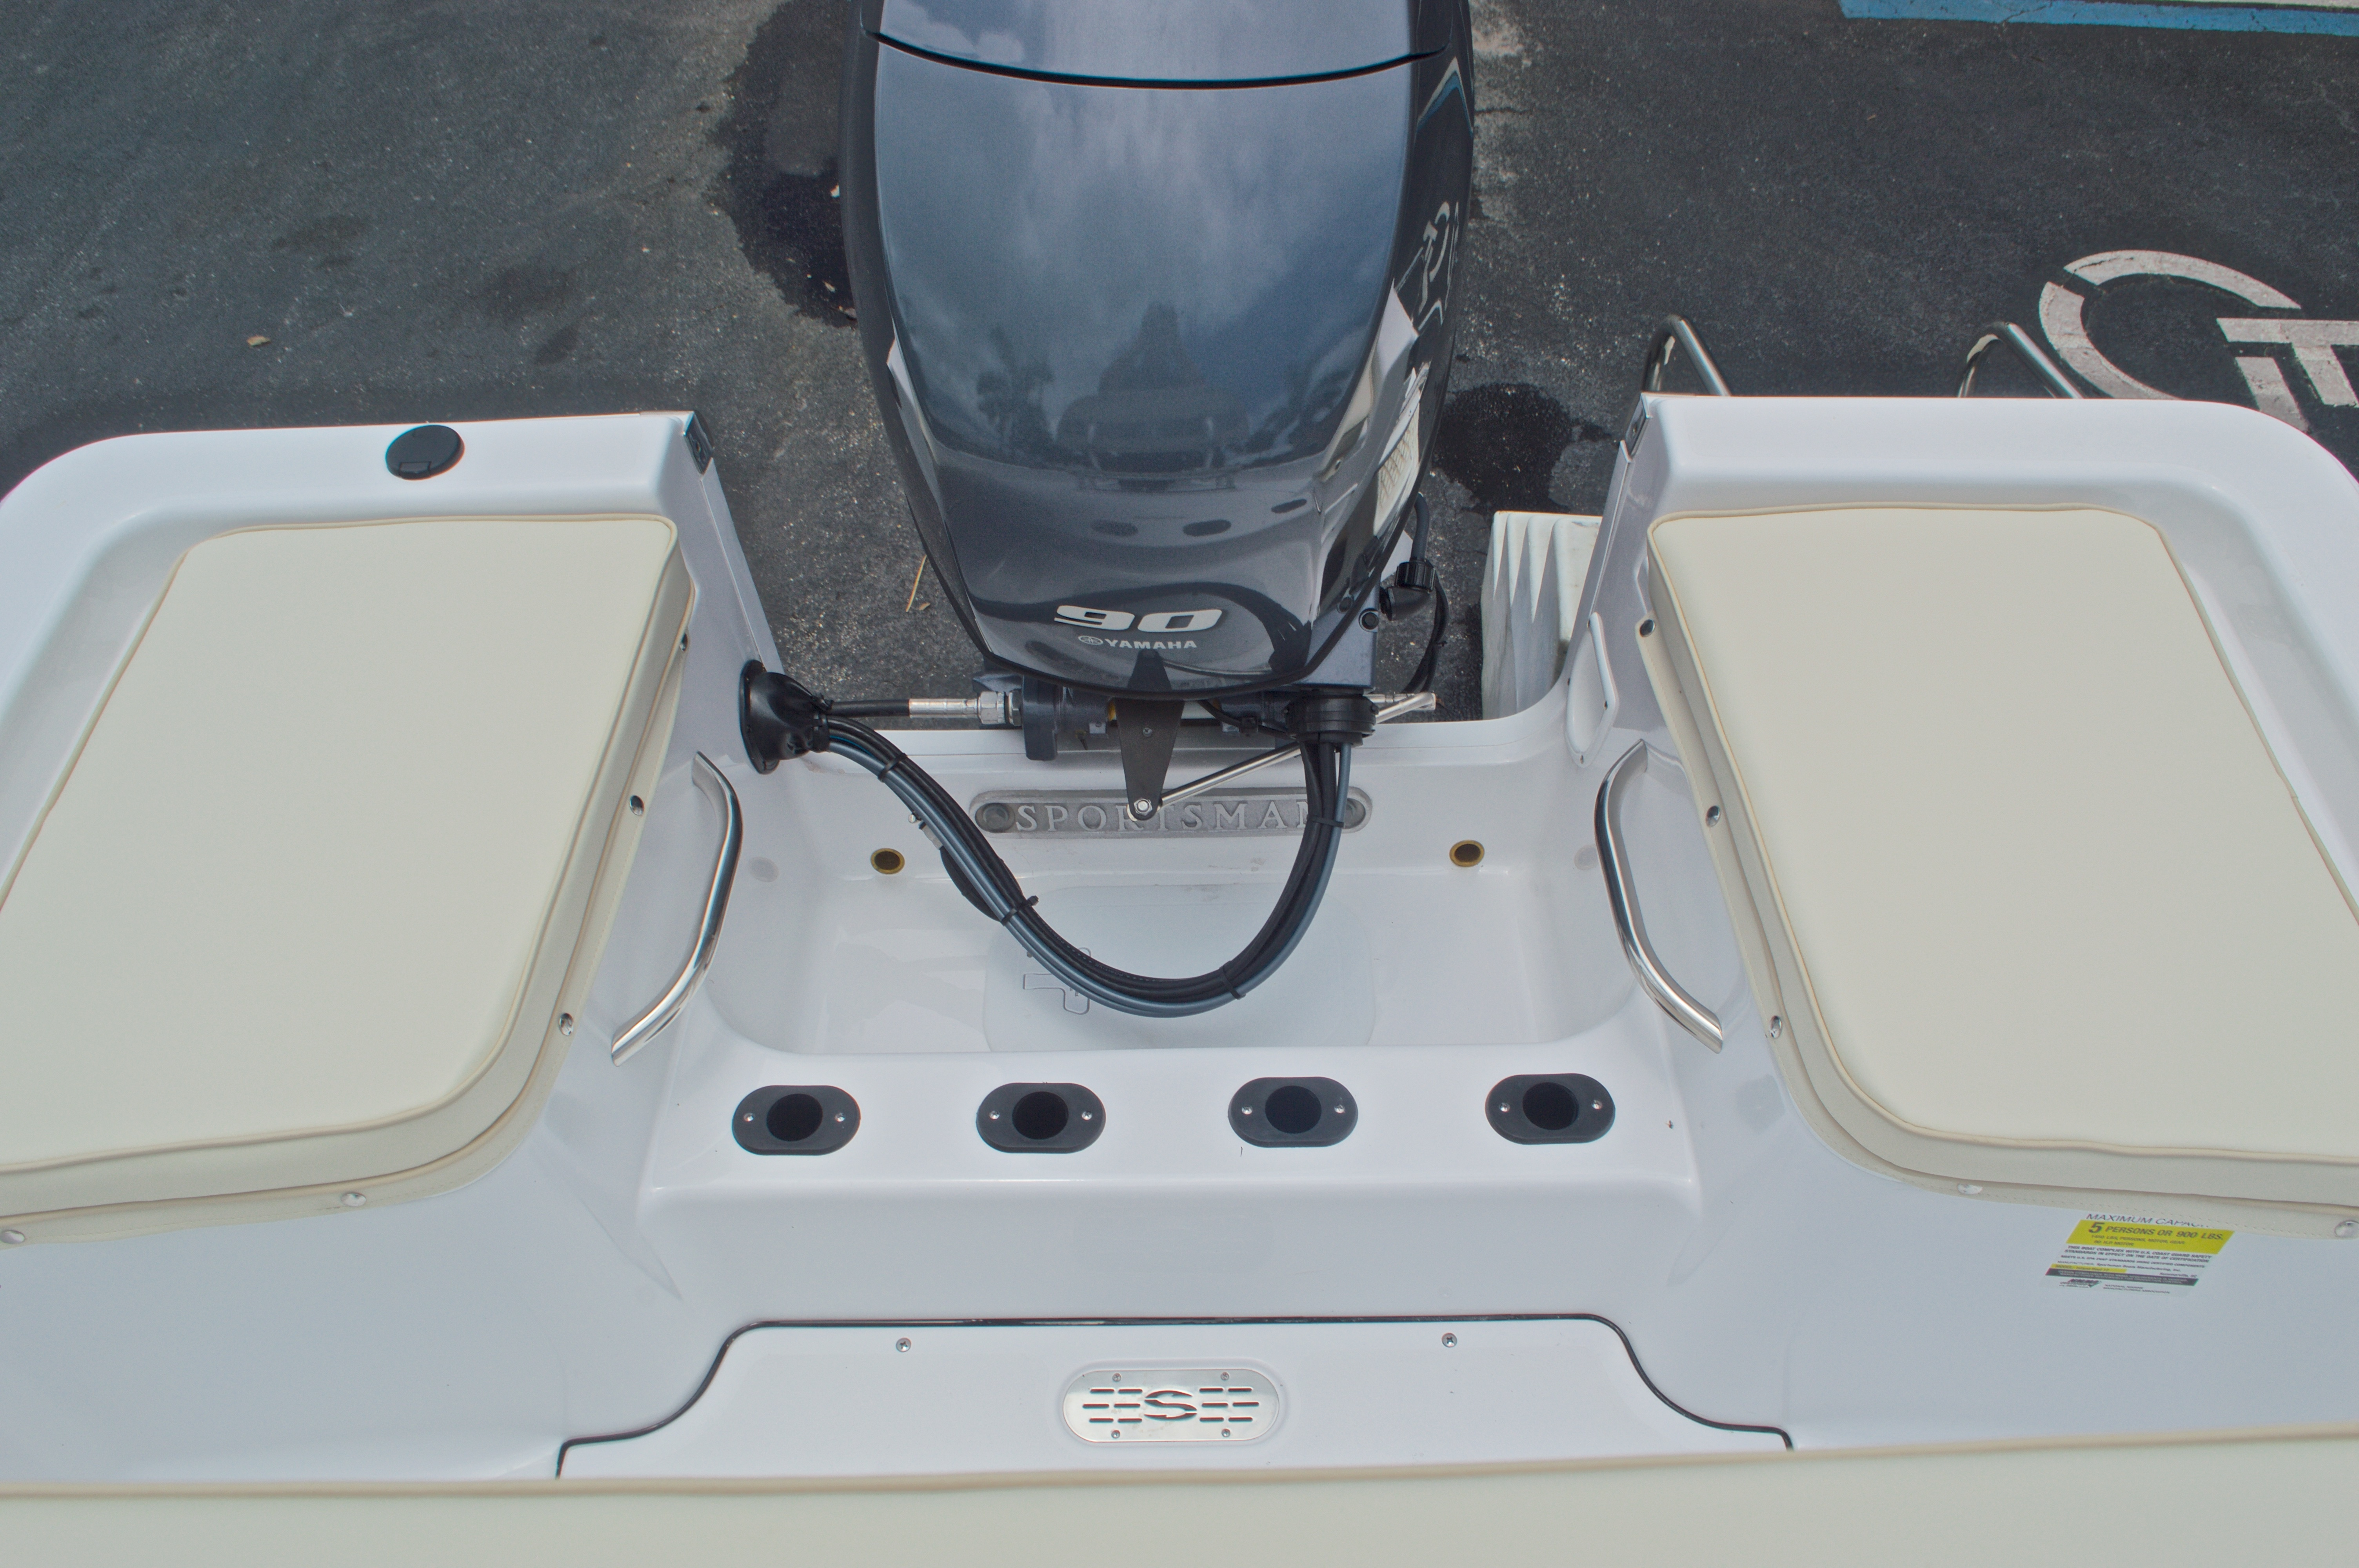 Thumbnail 11 for New 2016 Sportsman 17 Island Reef boat for sale in Miami, FL